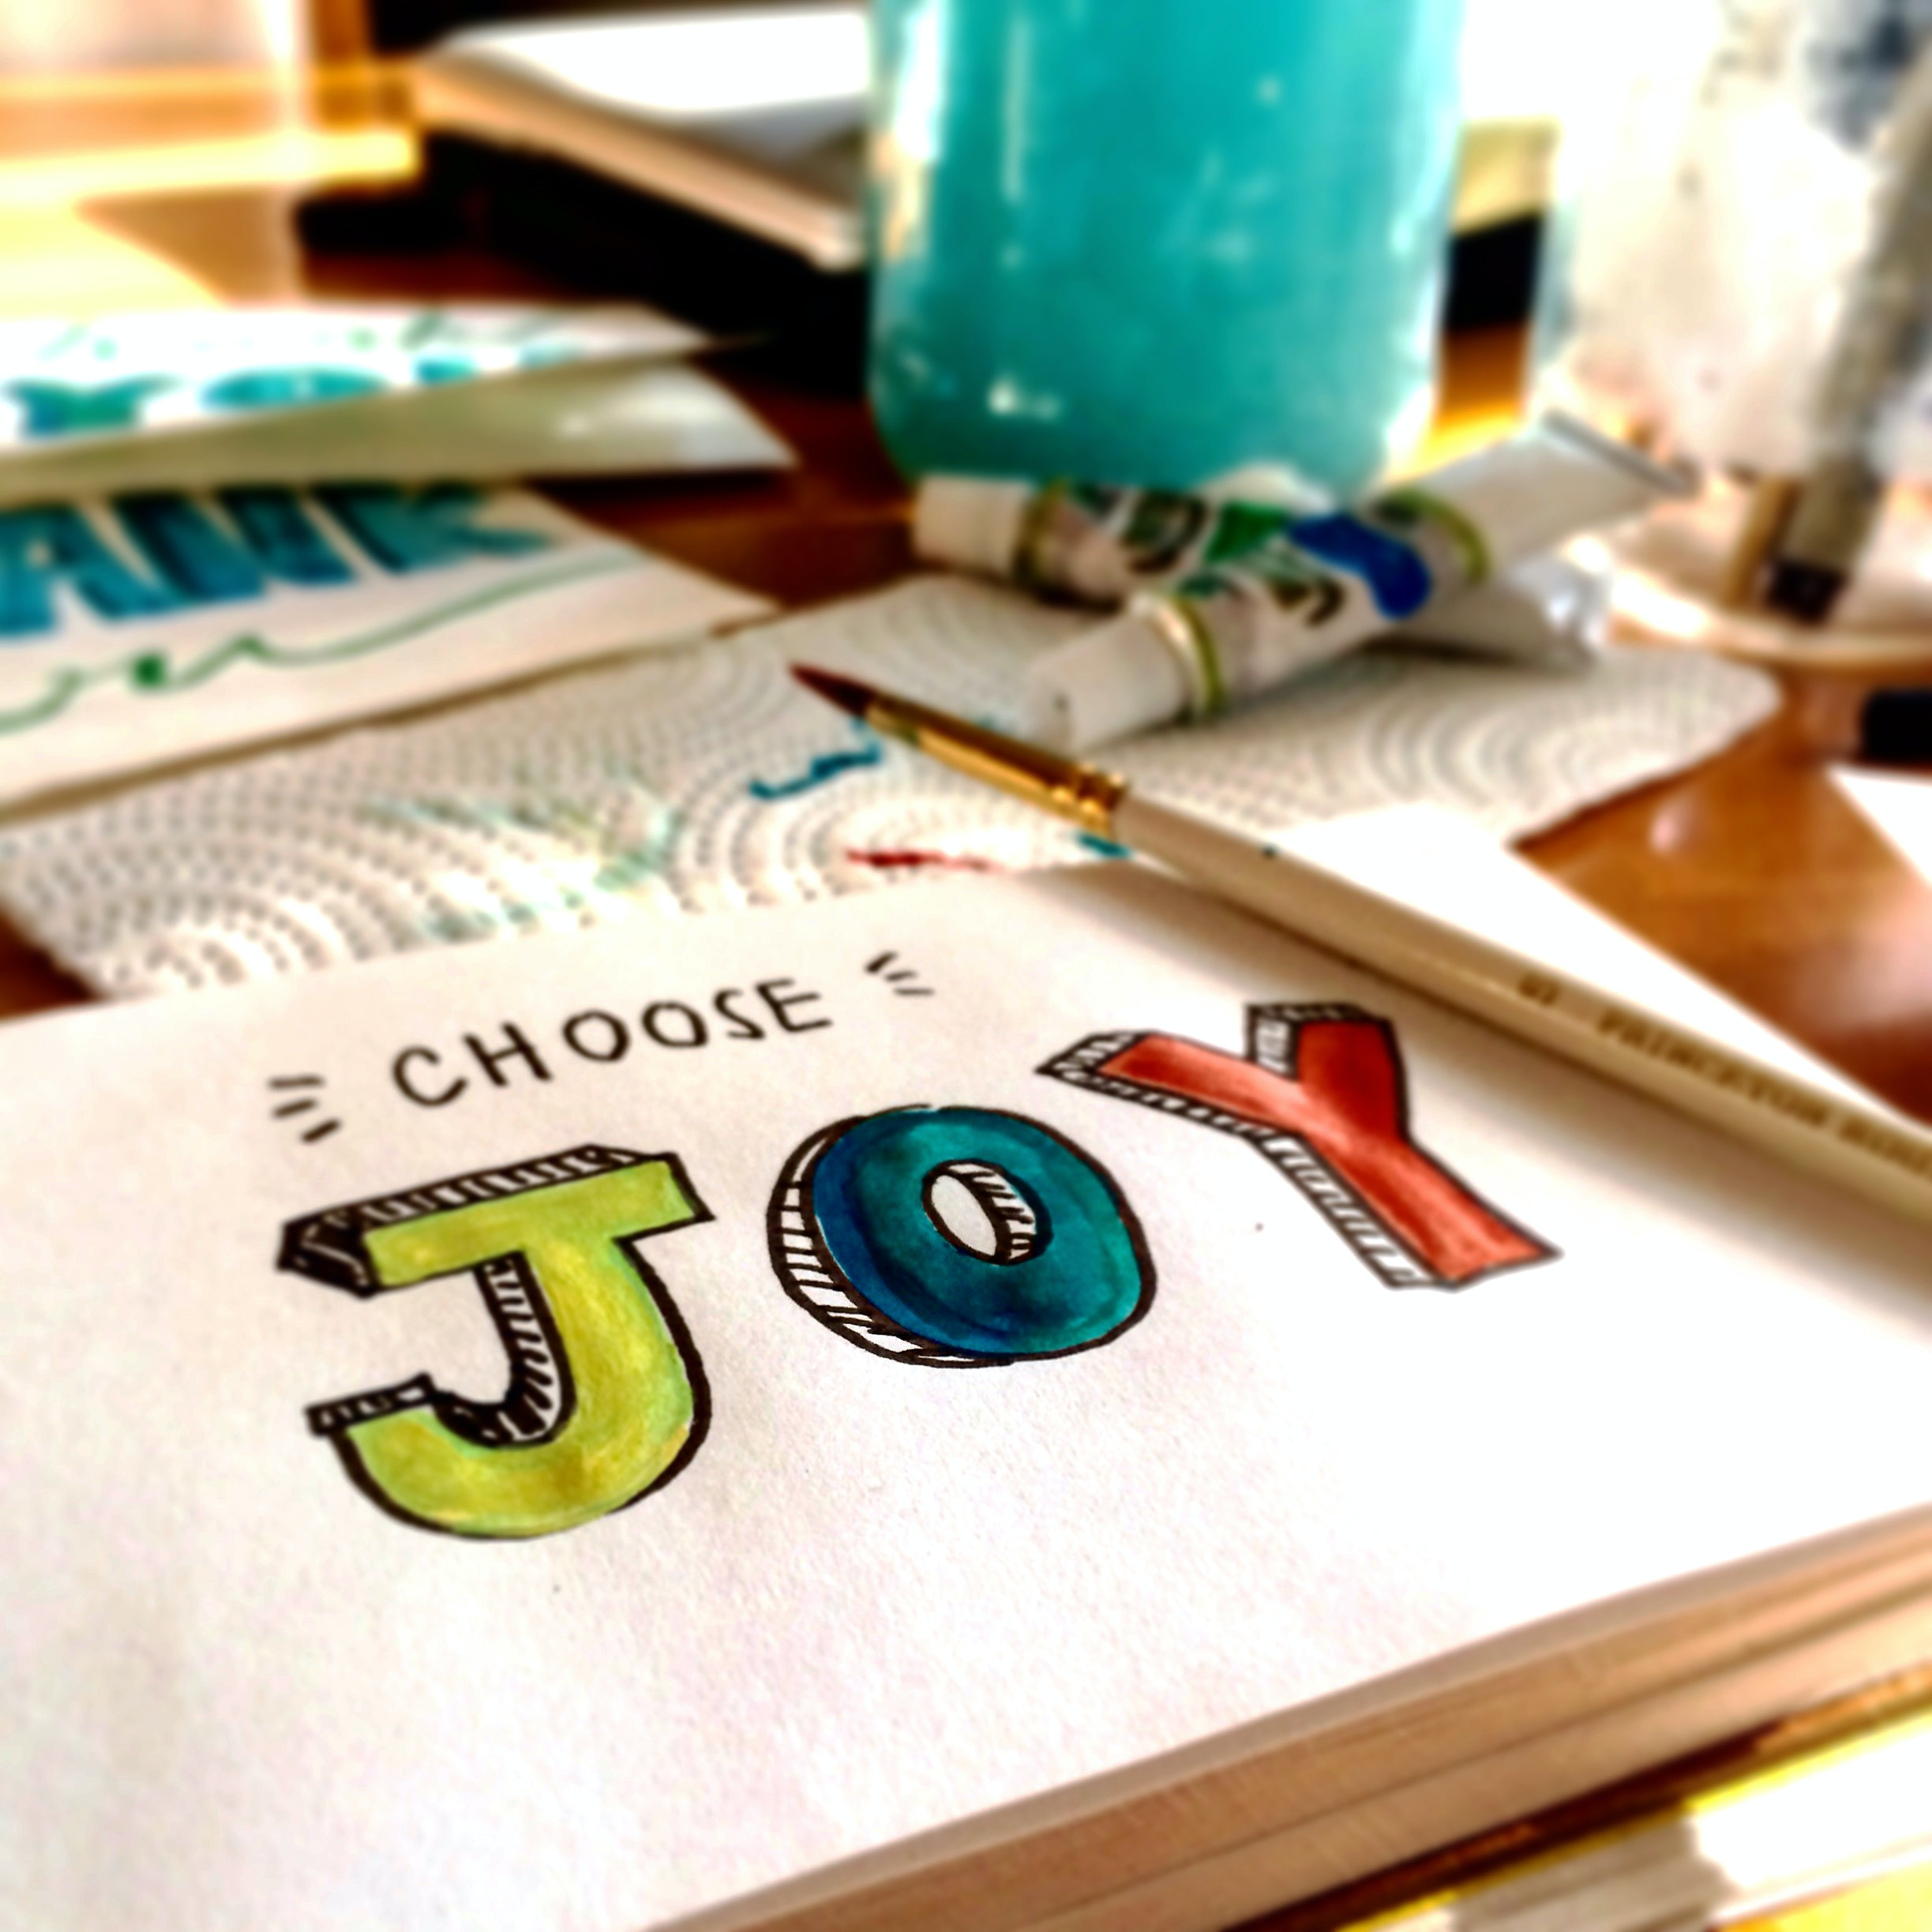 10 Ways To Add Joy To Your Life When You Don't Have A Penny To Spare